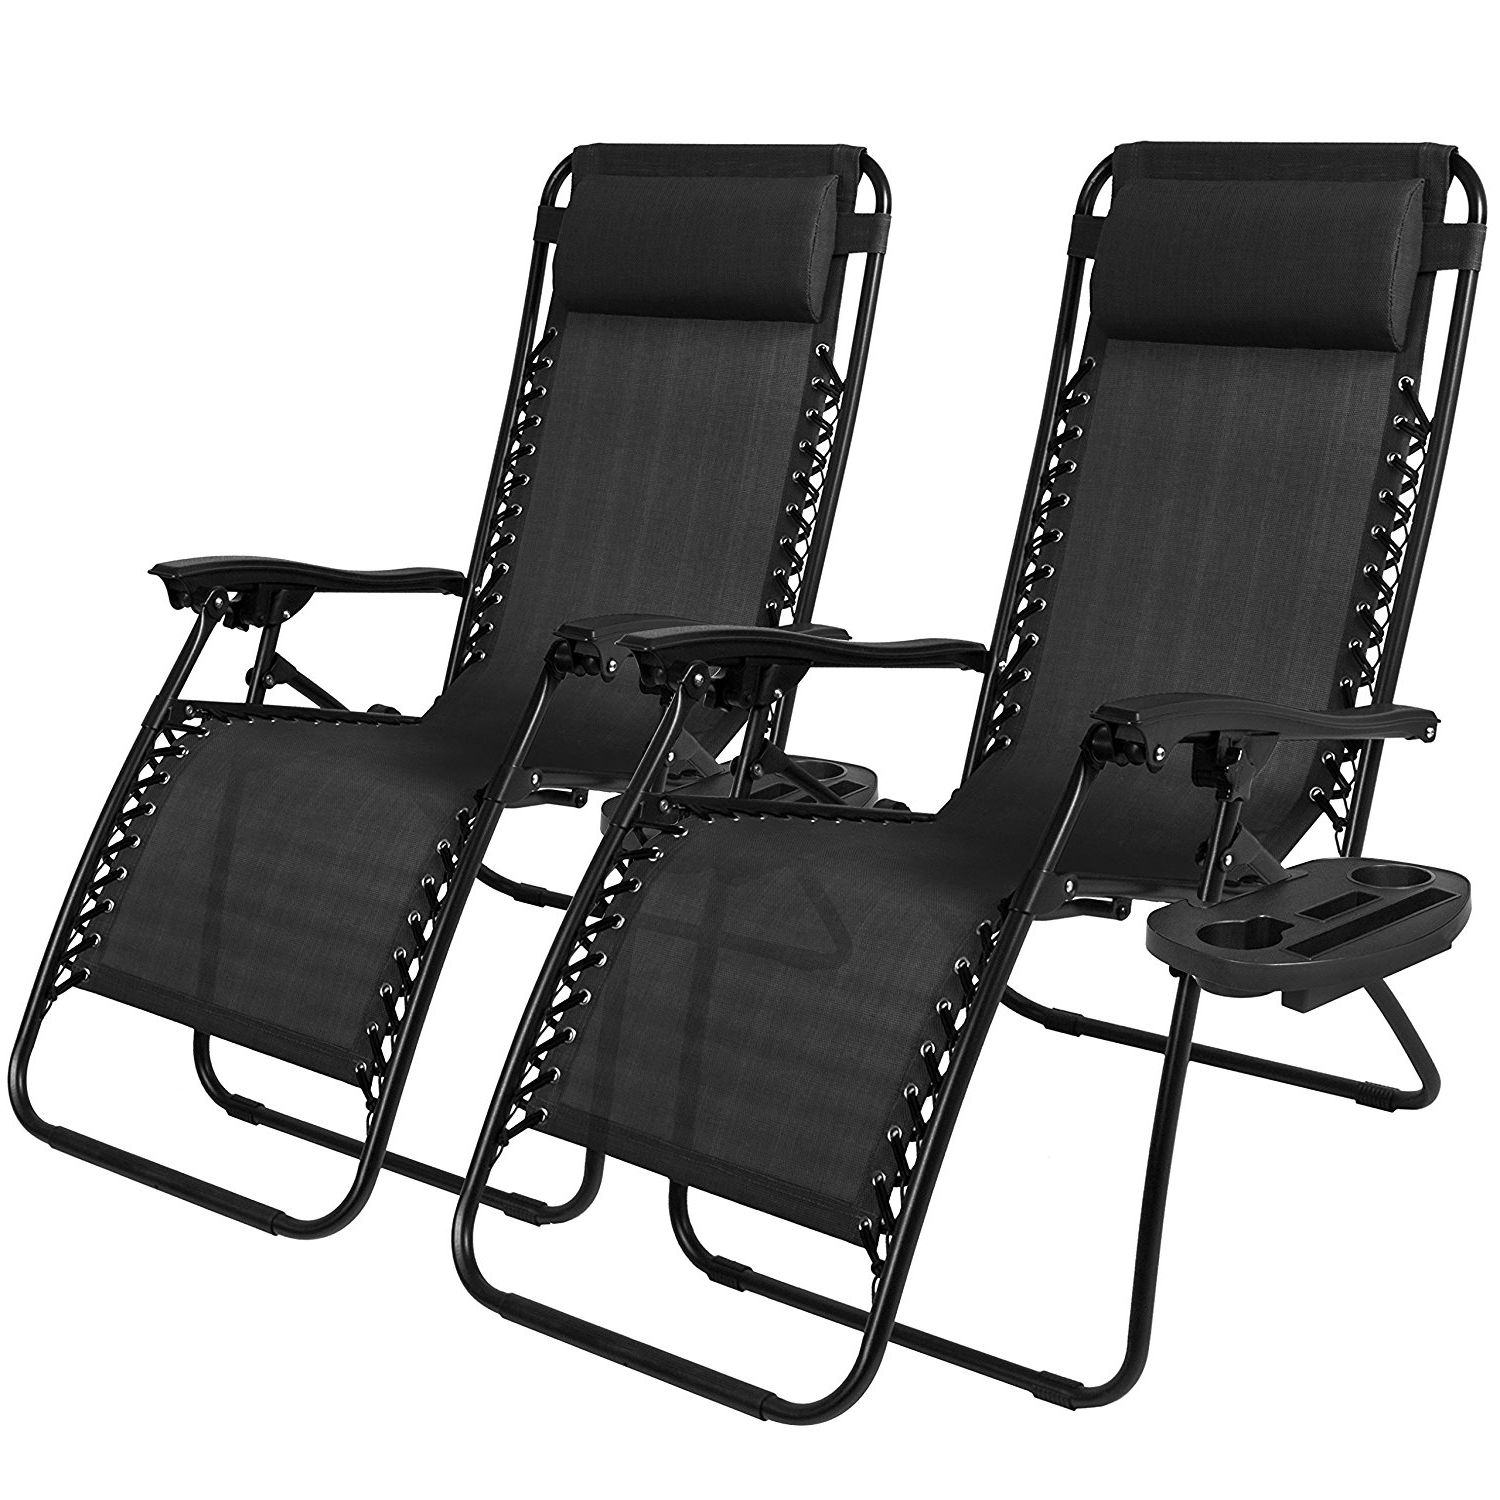 2018 Amazon : Best Choice Products Zero Gravity Chairs Case Of (2 Inside Zero Gravity Chaise Lounge Chairs (View 3 of 15)